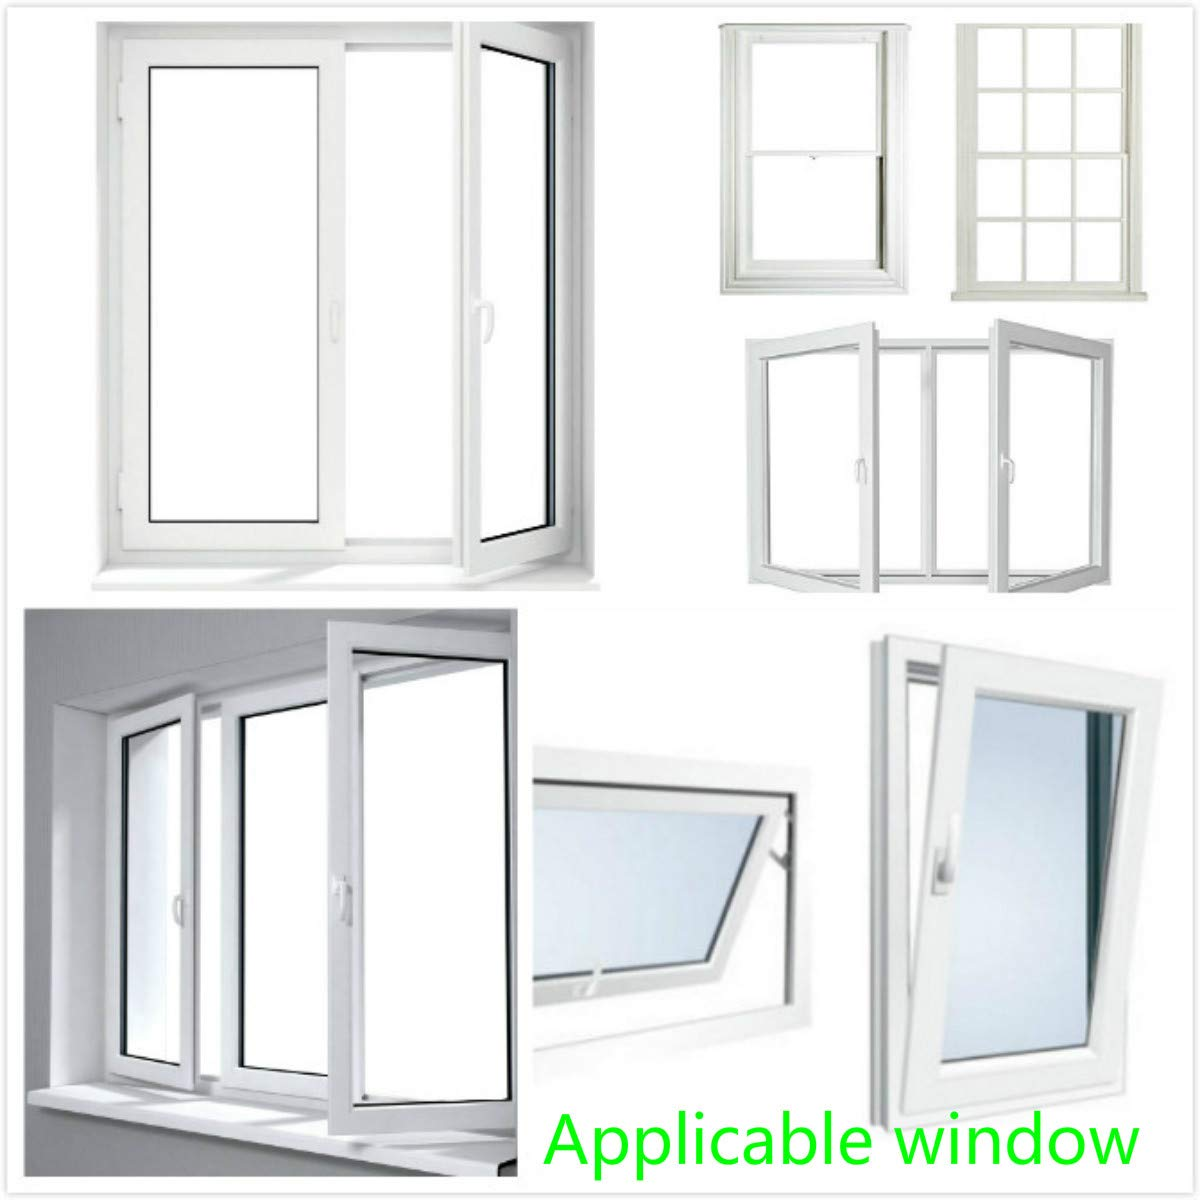 Airlock Window Seal For Mobile Air Conditioning Units